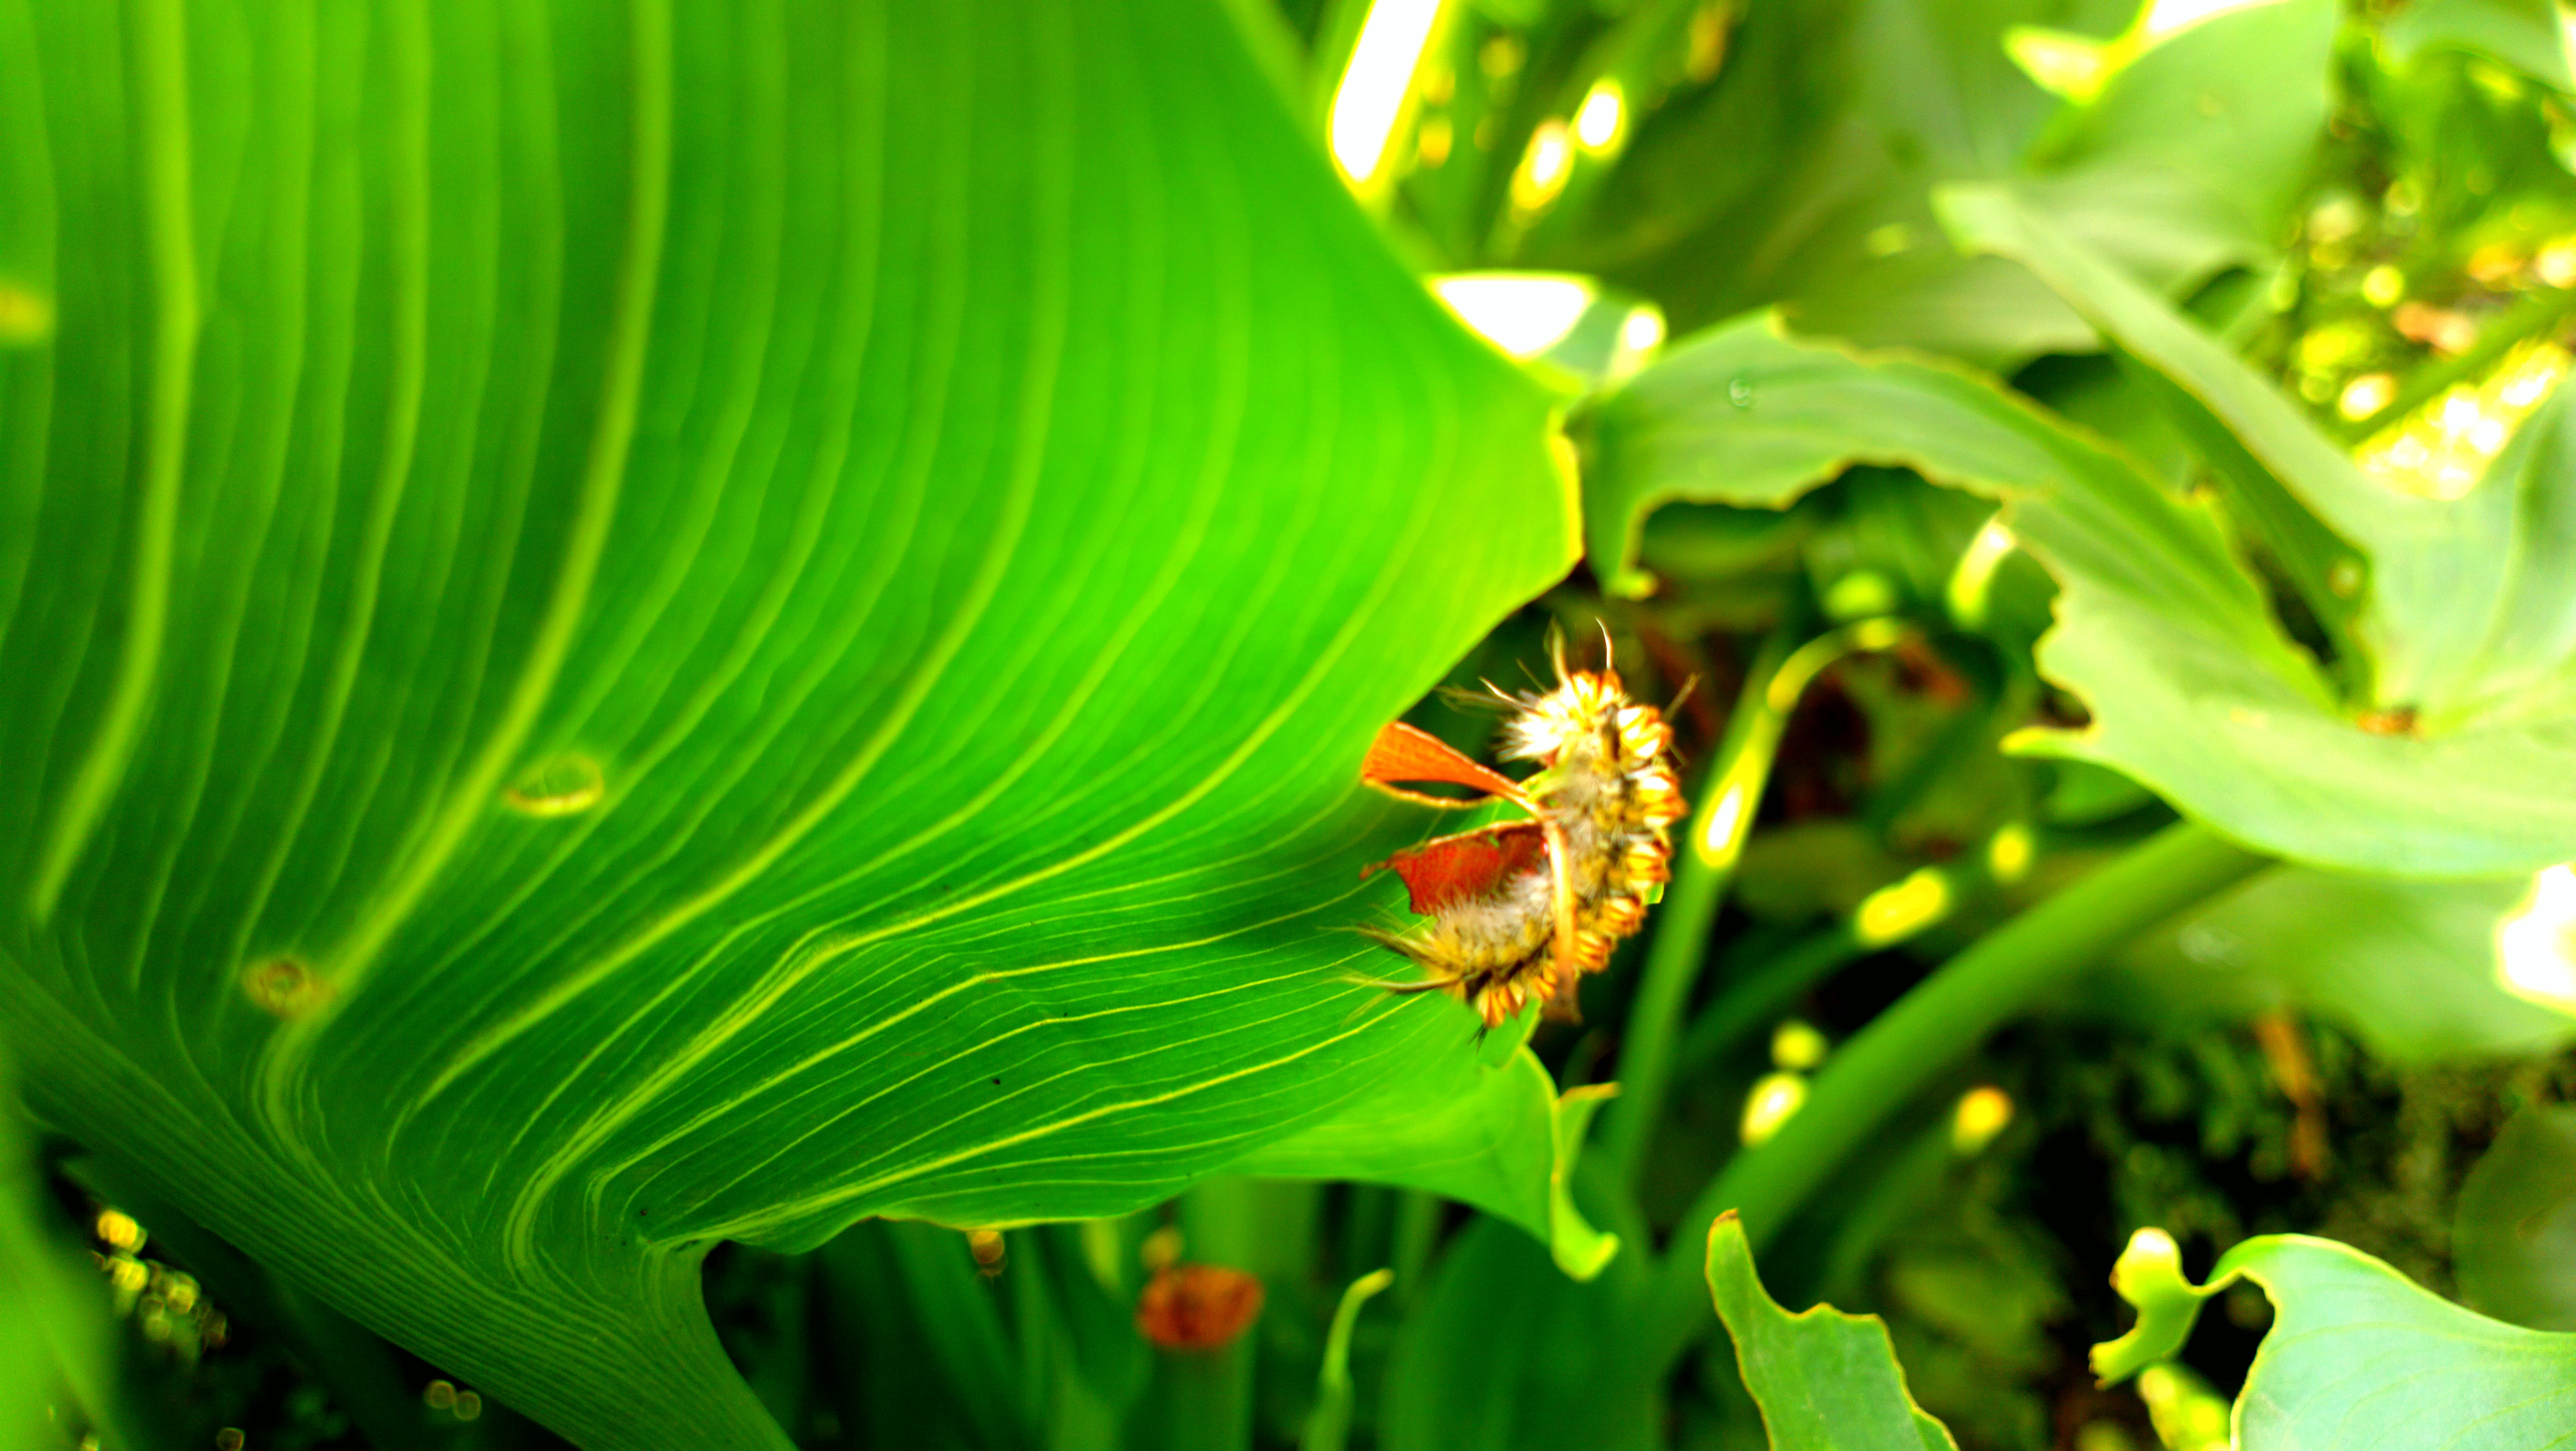 Free stock photo of green, insect, nature